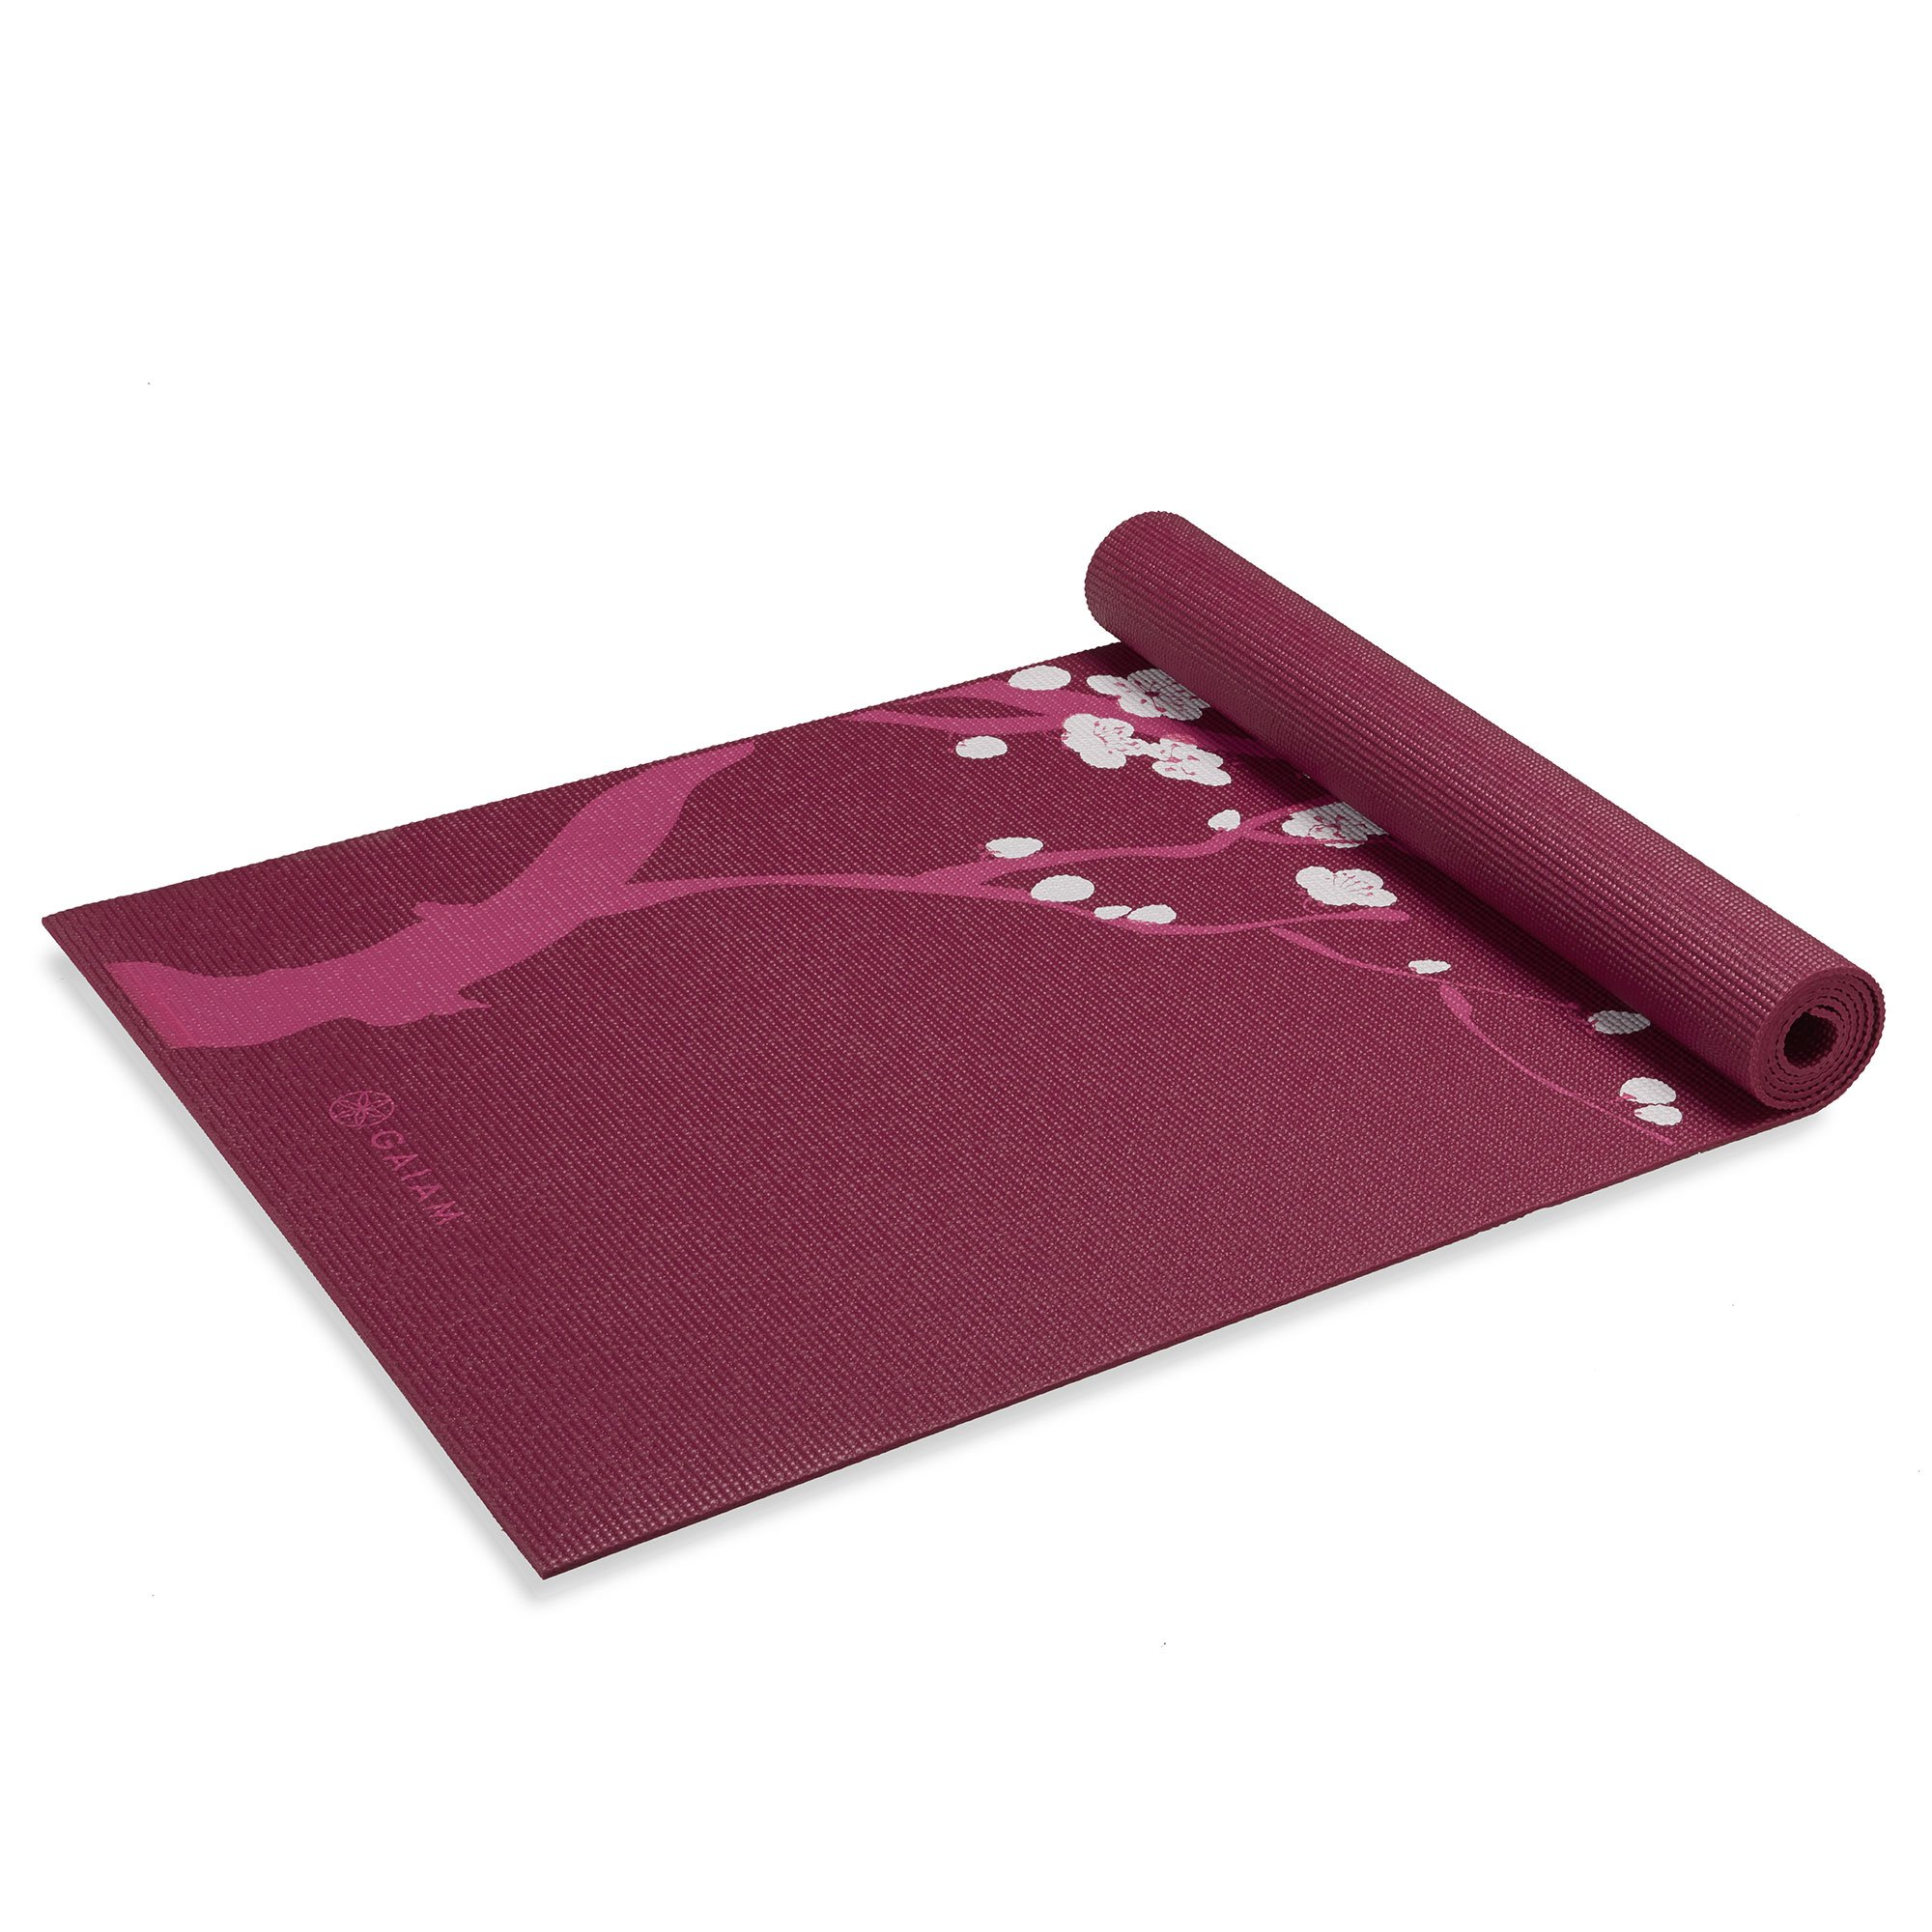 Gaiam Yoga Mat Premium 6mm Print Extra Thick Exercise